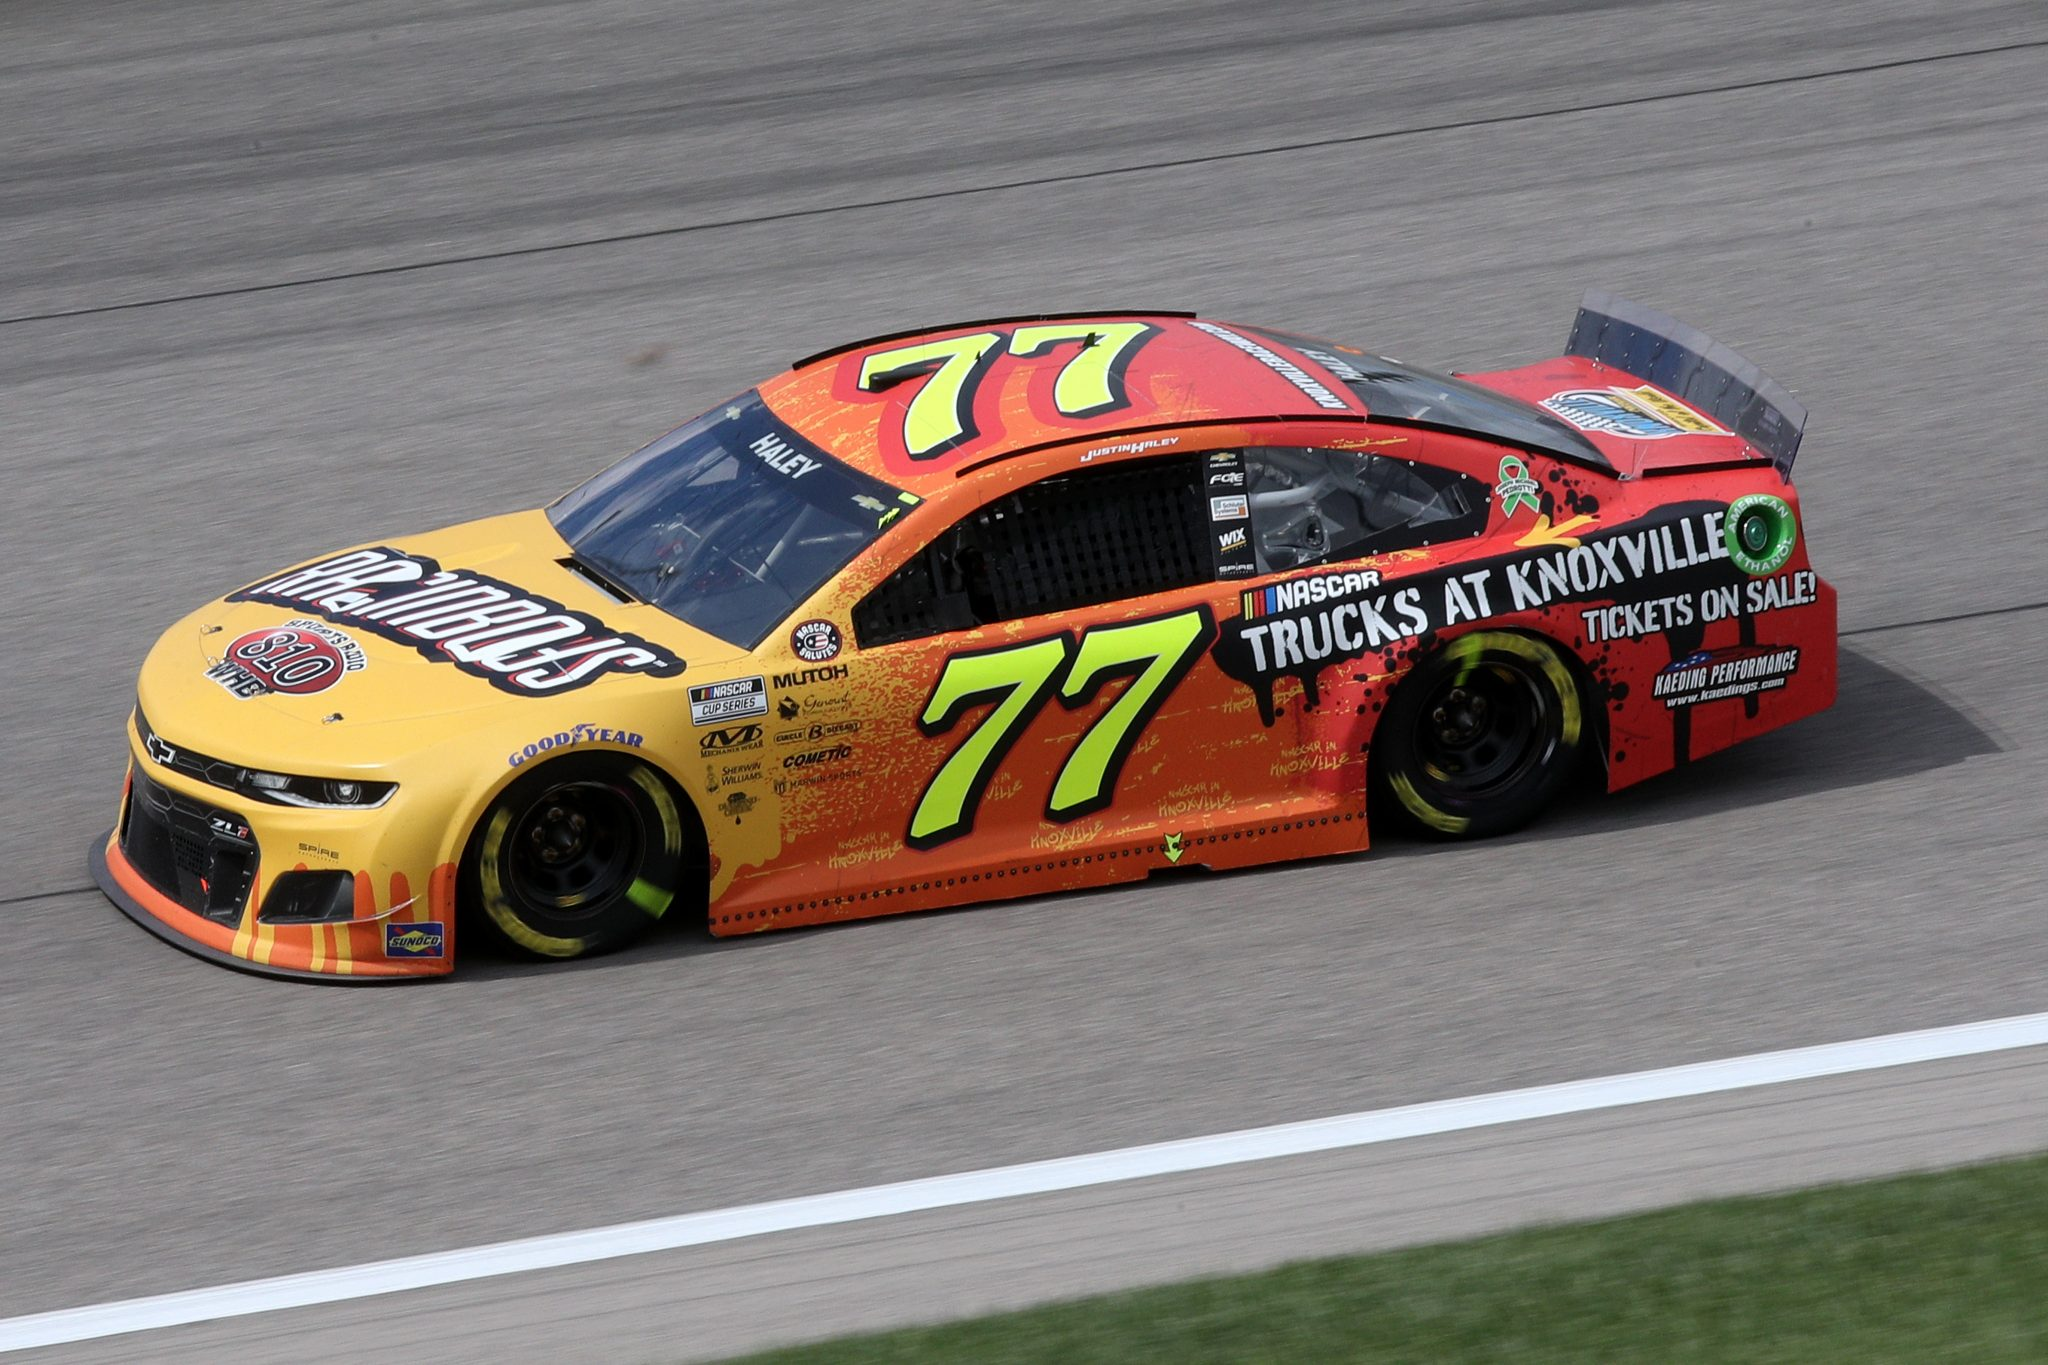 KANSAS CITY, KANSAS - MAY 02: Justin Haley, driver of the #77 NASCAR TRUCKS AT KNOXVILLE Chevrolet, drives during the NASCAR Cup Series Buschy McBusch Race 400 at Kansas Speedway on May 02, 2021 in Kansas City, Kansas. (Photo by Sean Gardner/Getty Images) | Getty Images